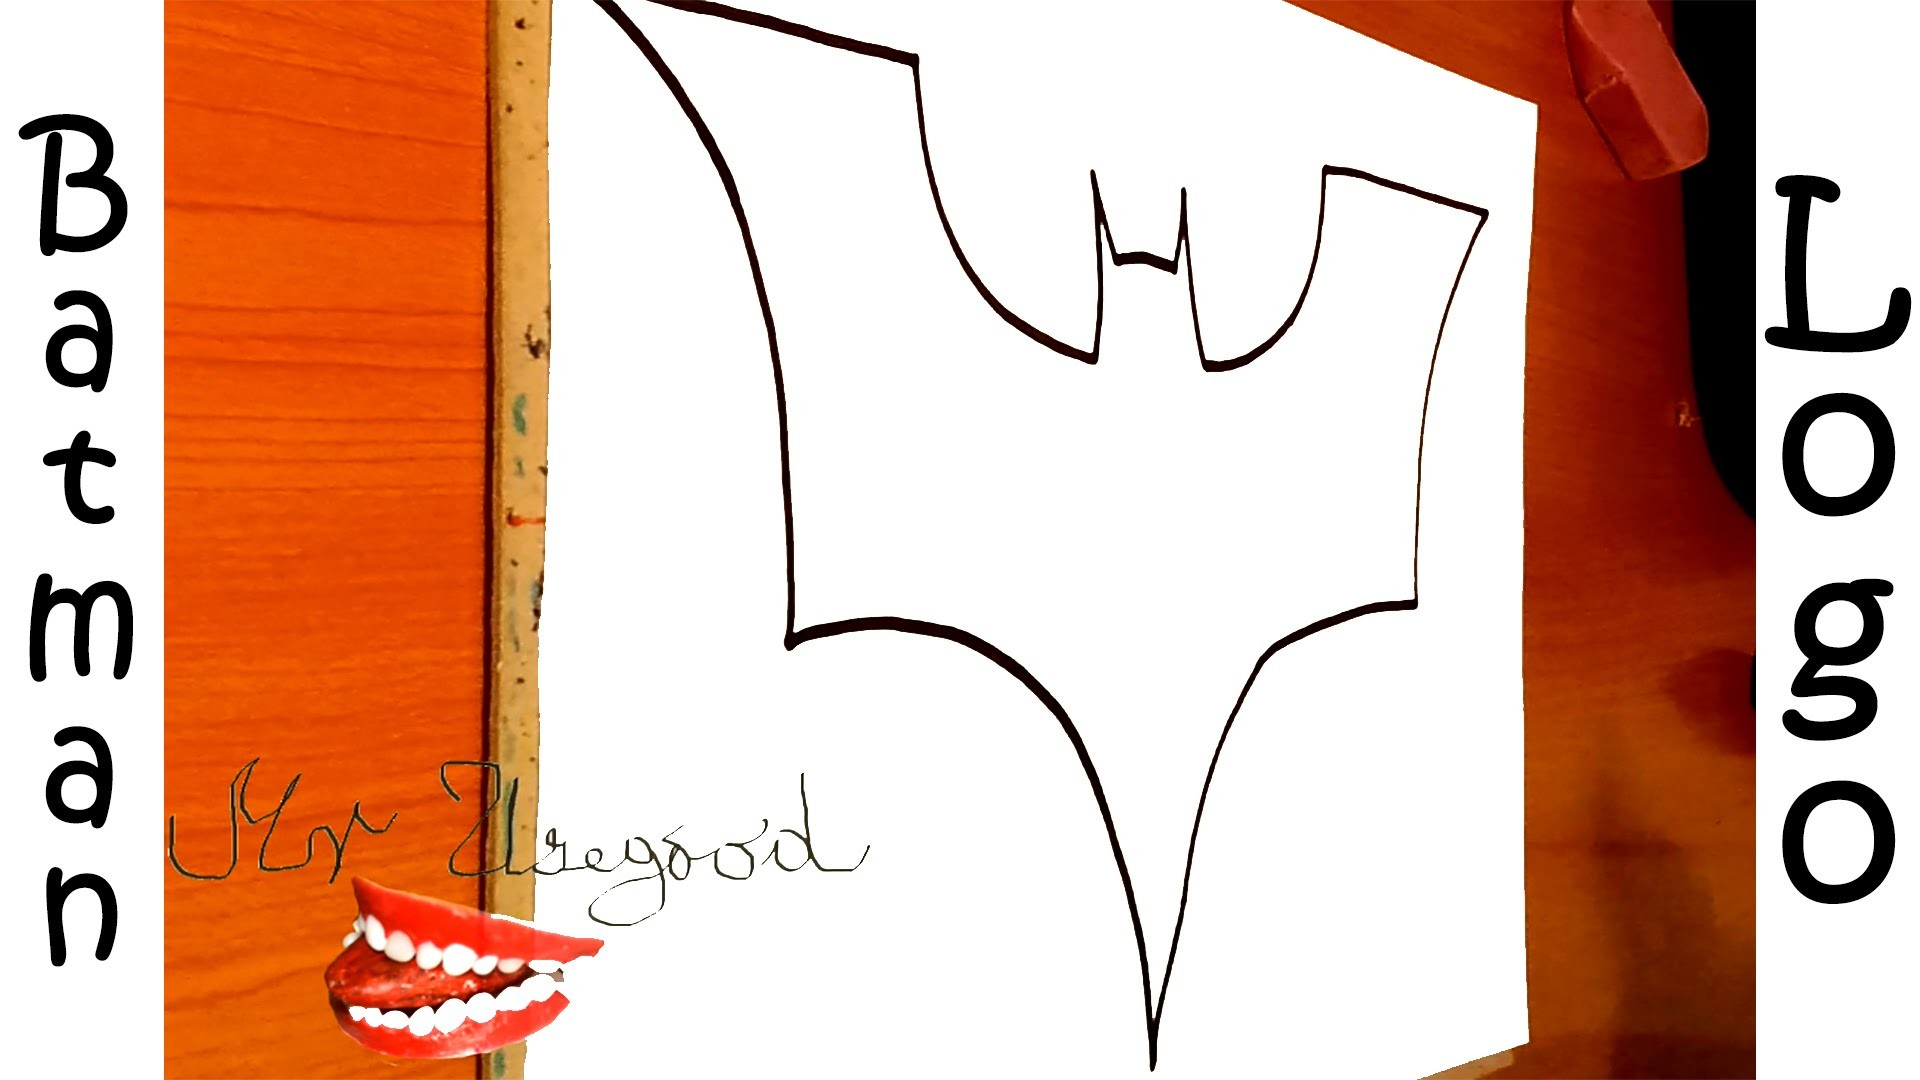 How to draw batman logo step by step easy draw easy stuff for Stuff to draw